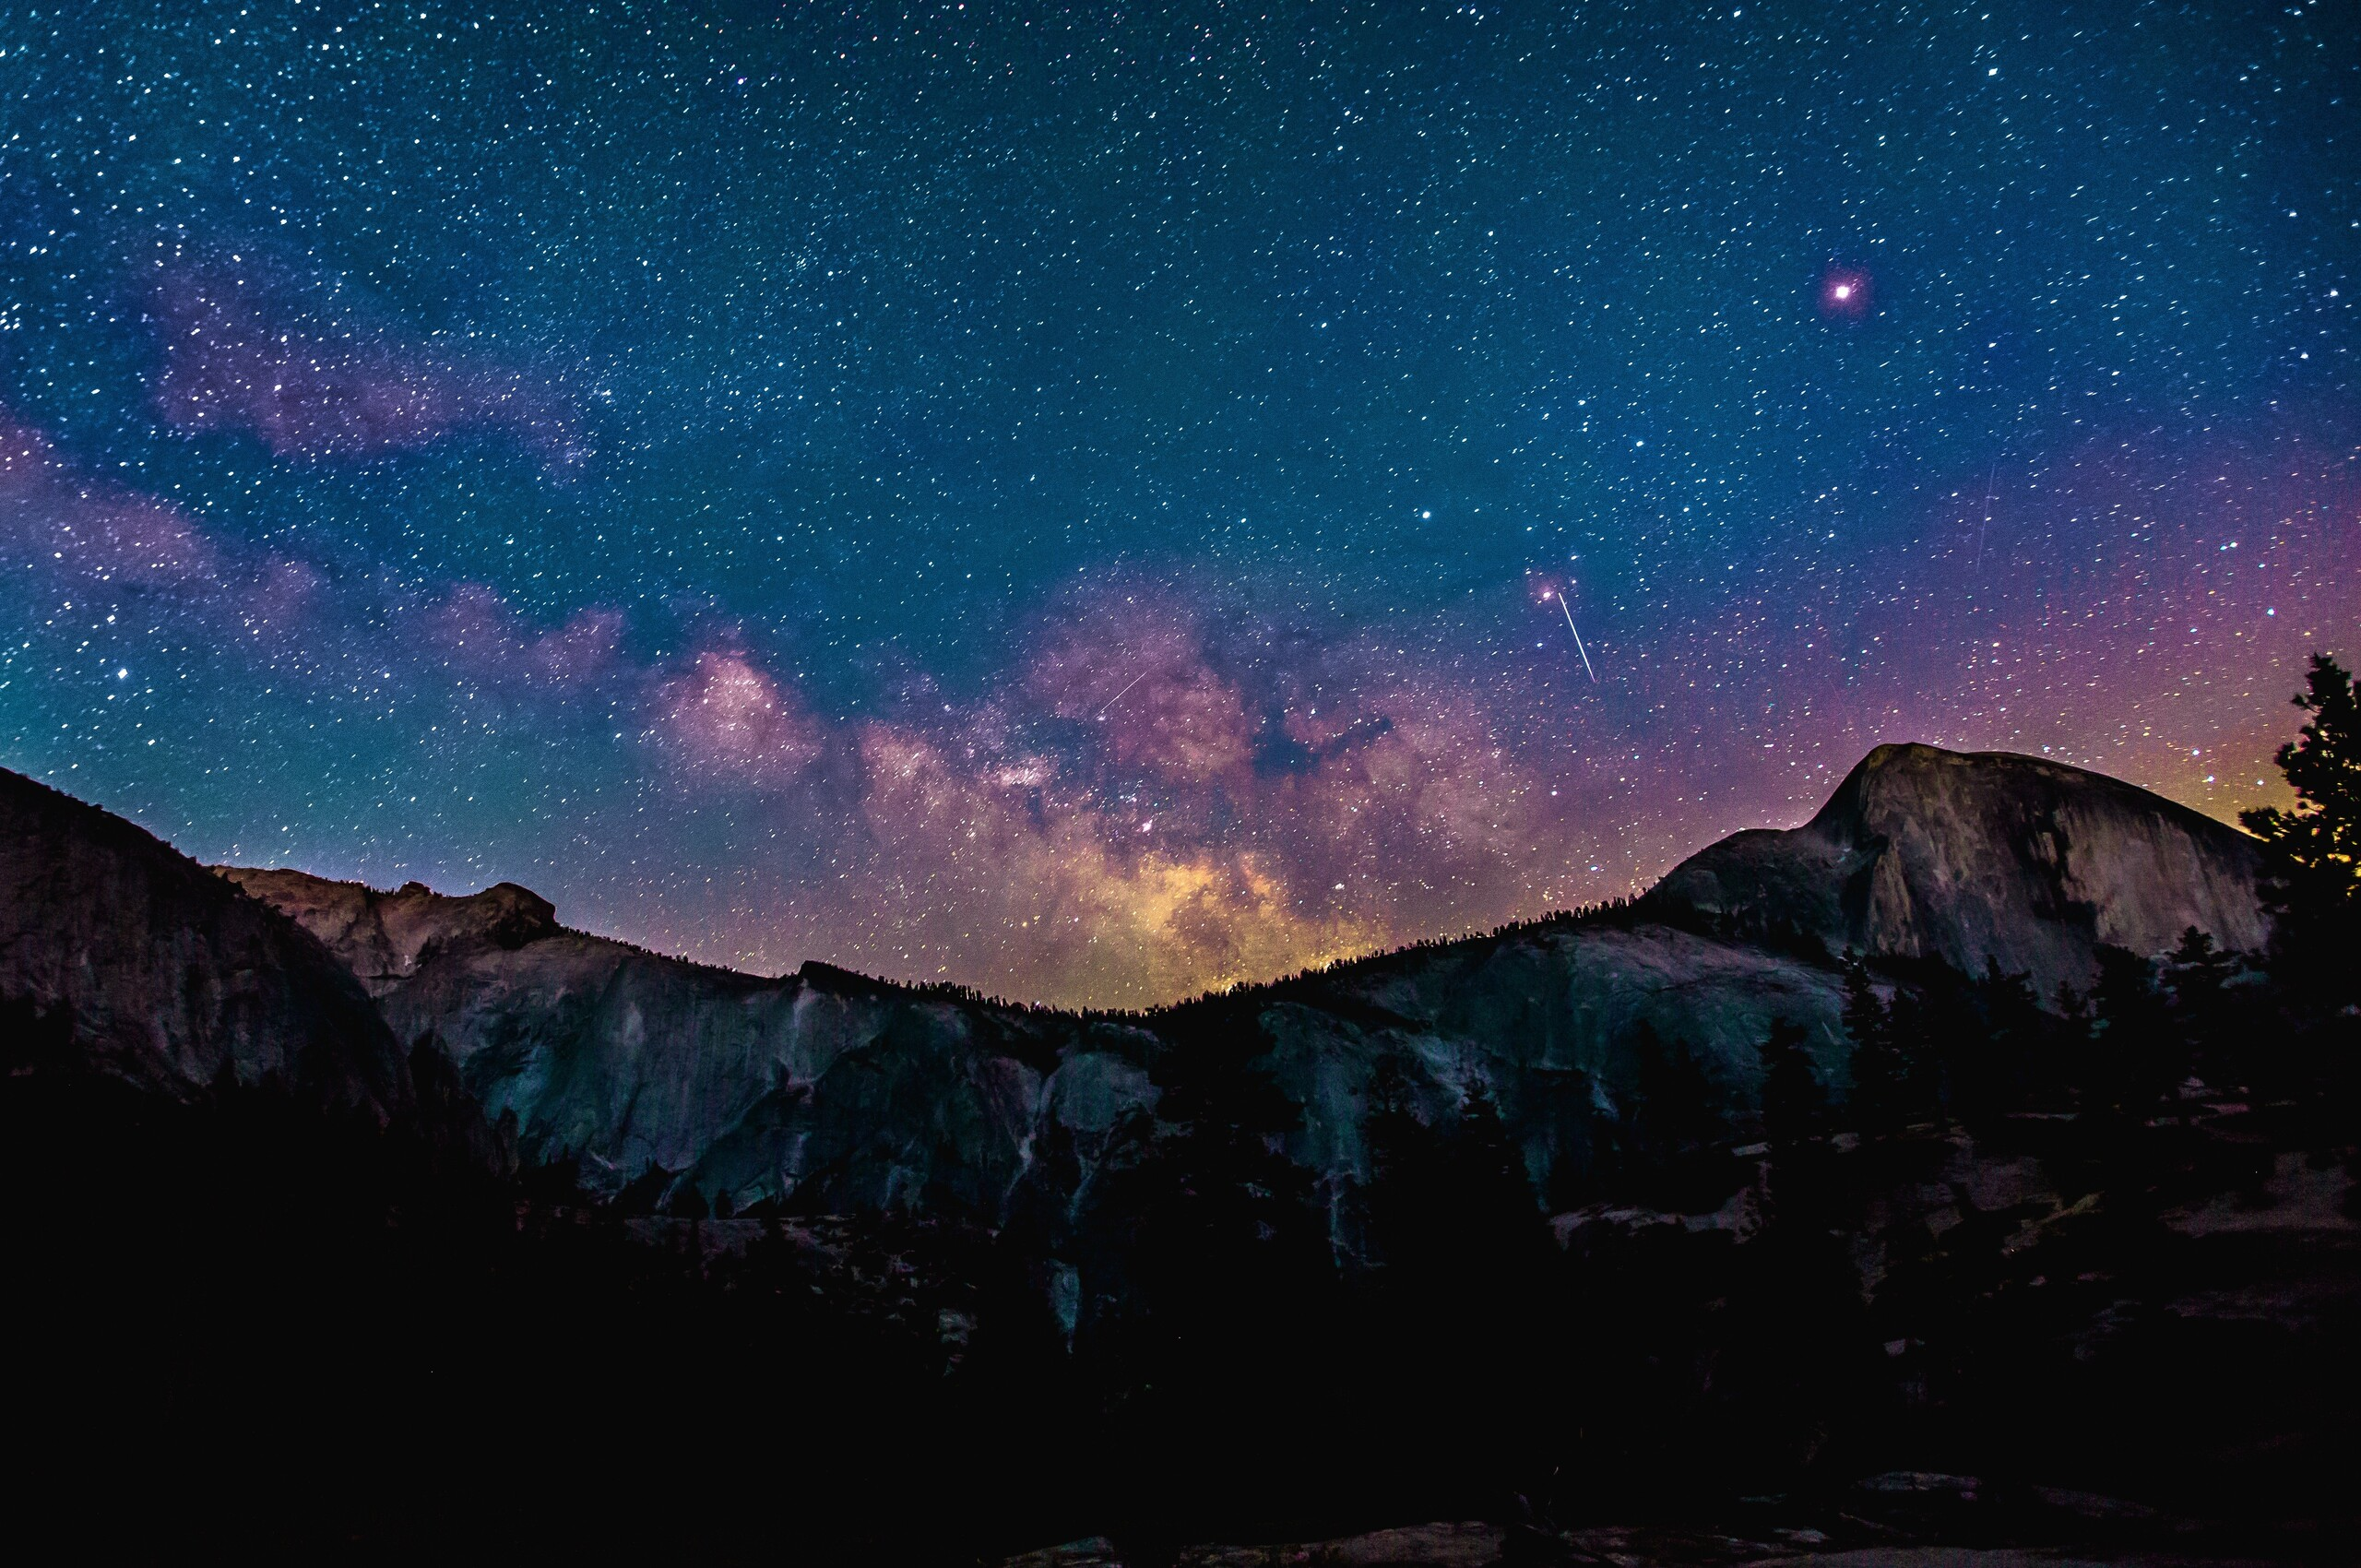 Good Wallpaper Mountain Space - stars-space-landscape-mountains-ki-2560x1700  You Should Have_622577.jpg